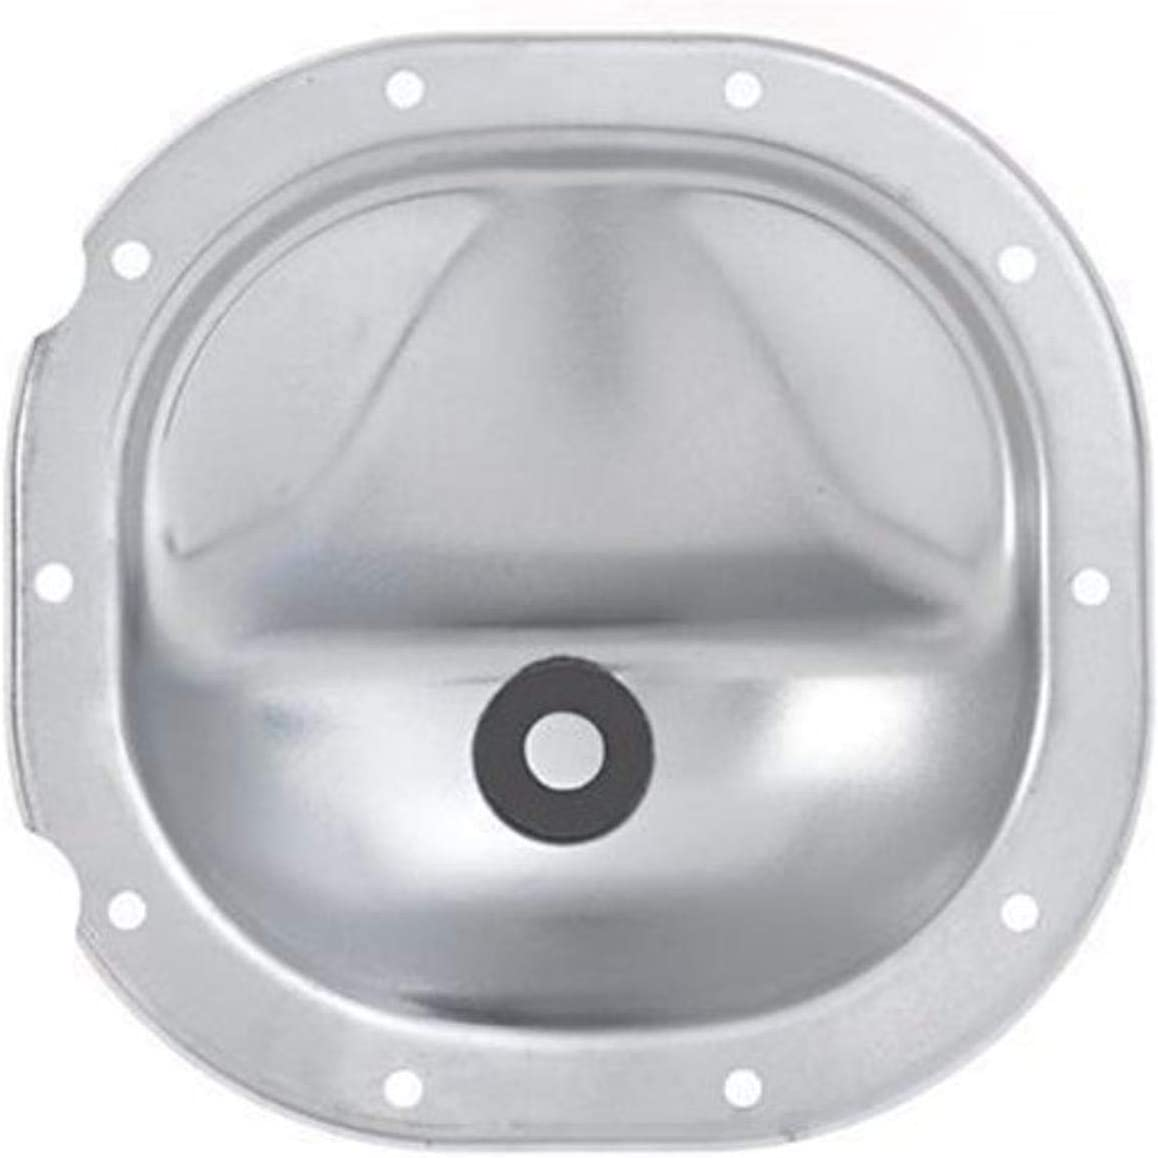 ATP Automotive New sales online shopping 111103 Kit Differential Cover